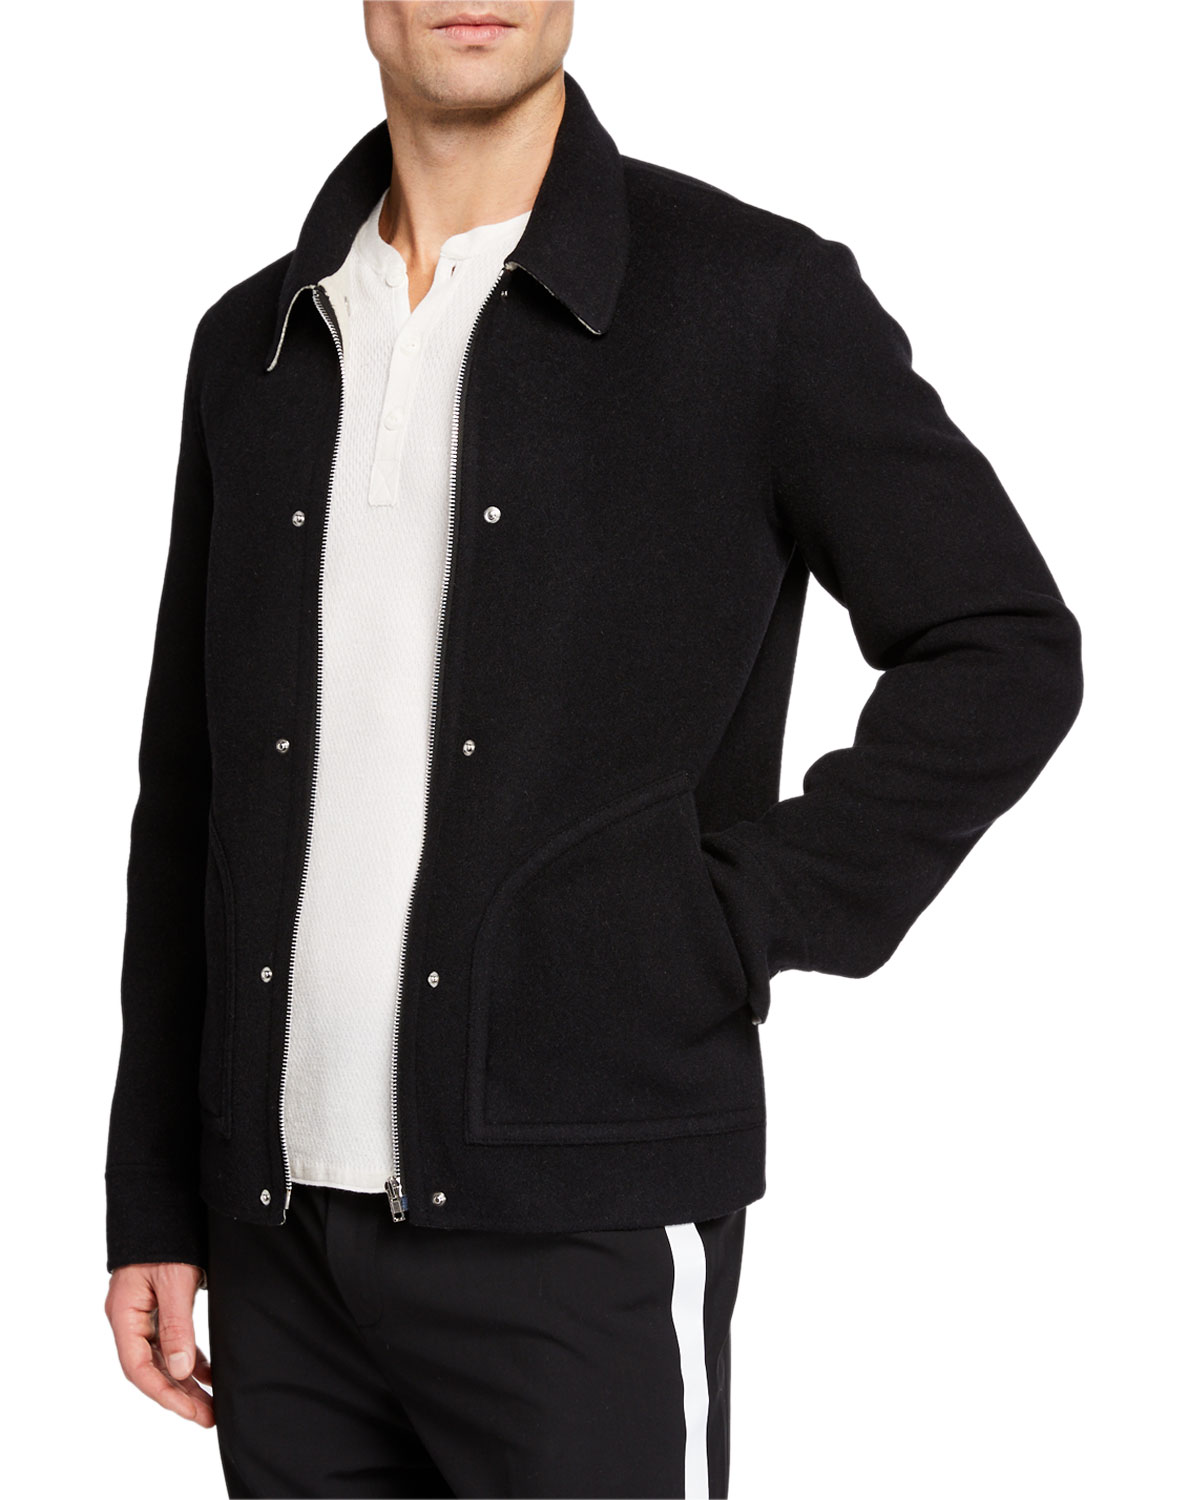 7391acacc0ef5 Mens Blouson Jackets « Alzheimer's Network of Oregon